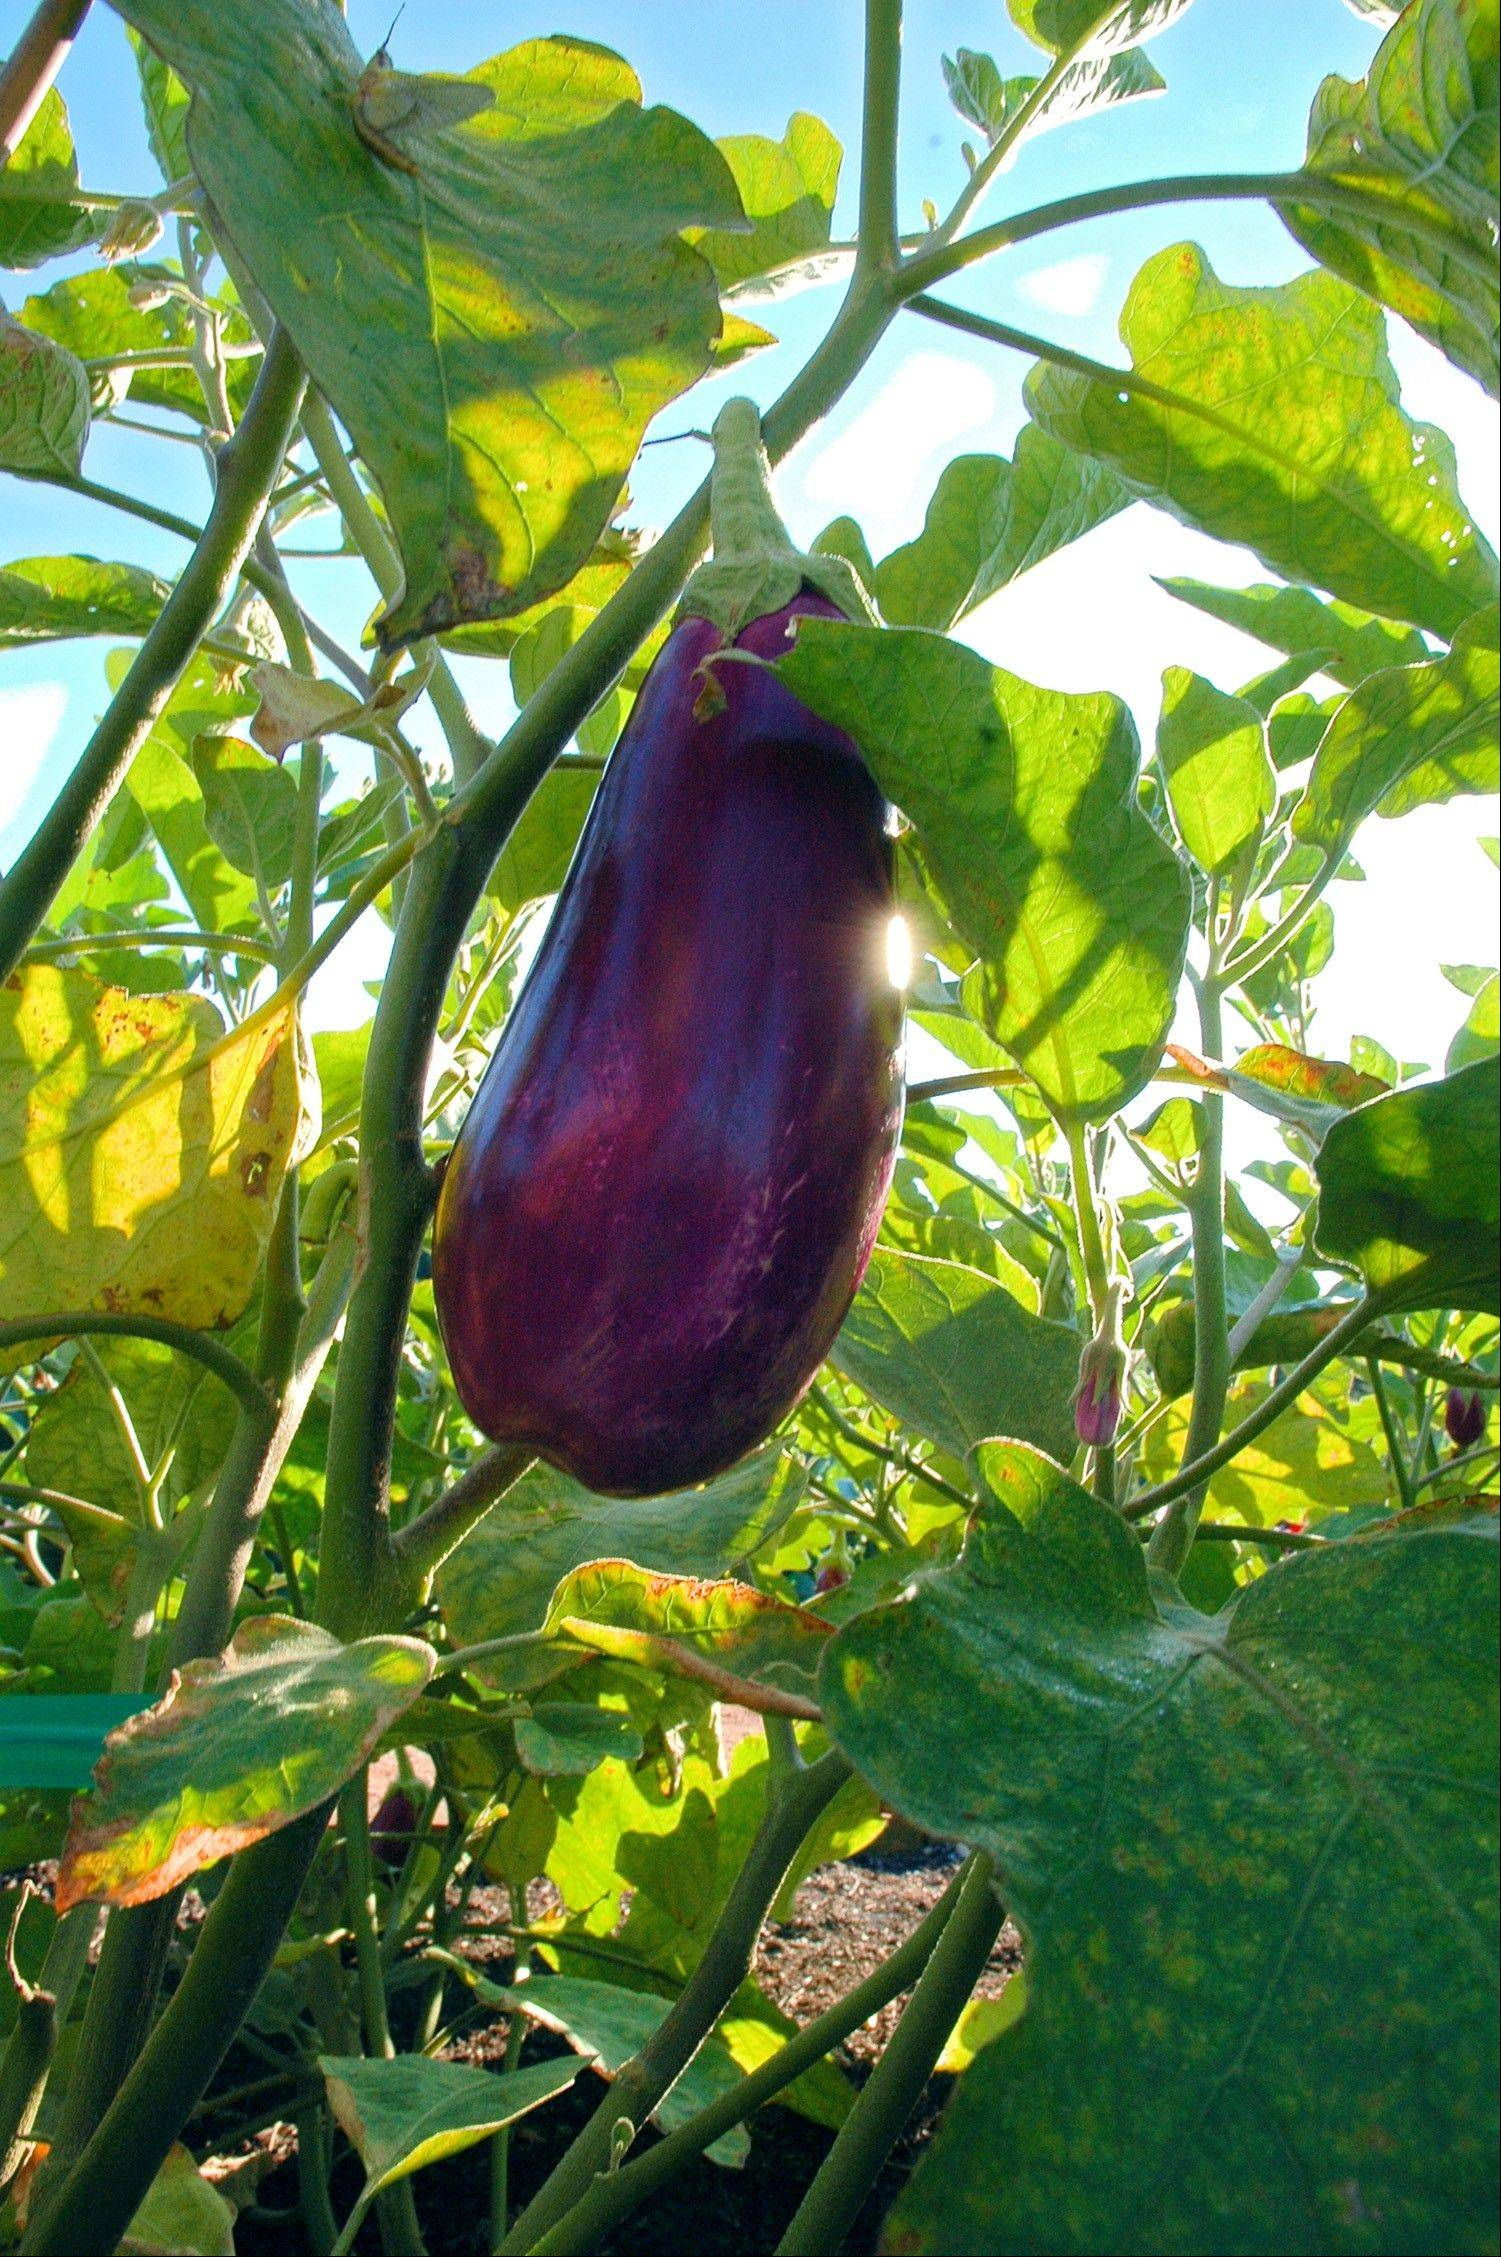 Vegetables that can be damaged easily, like eggplant, should be cut from the vine, rather than pulled.